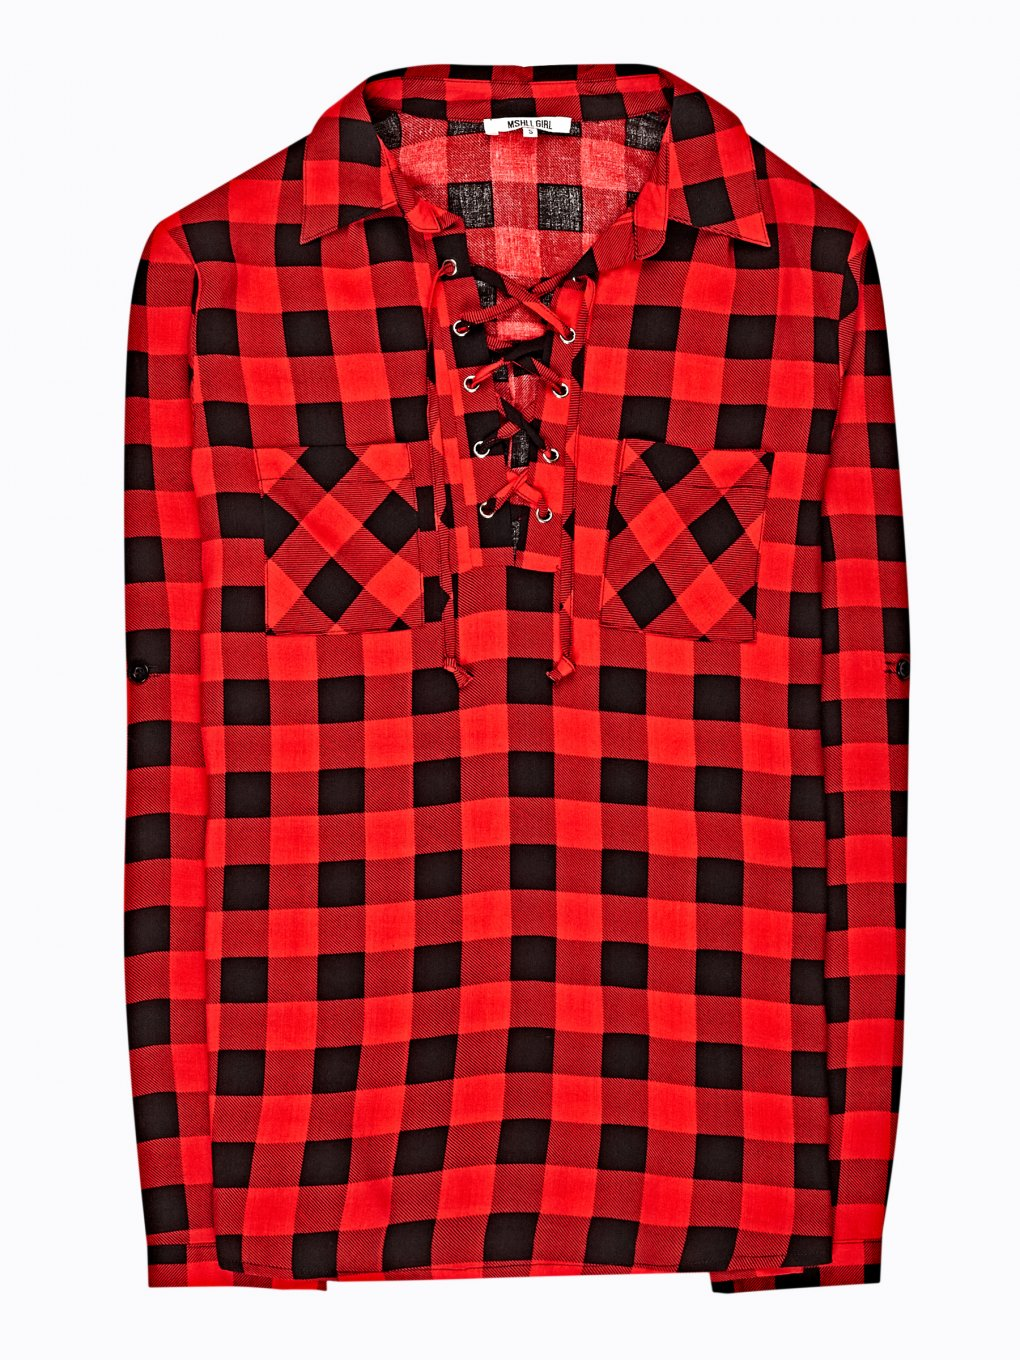 Plaid shirt with front lacing